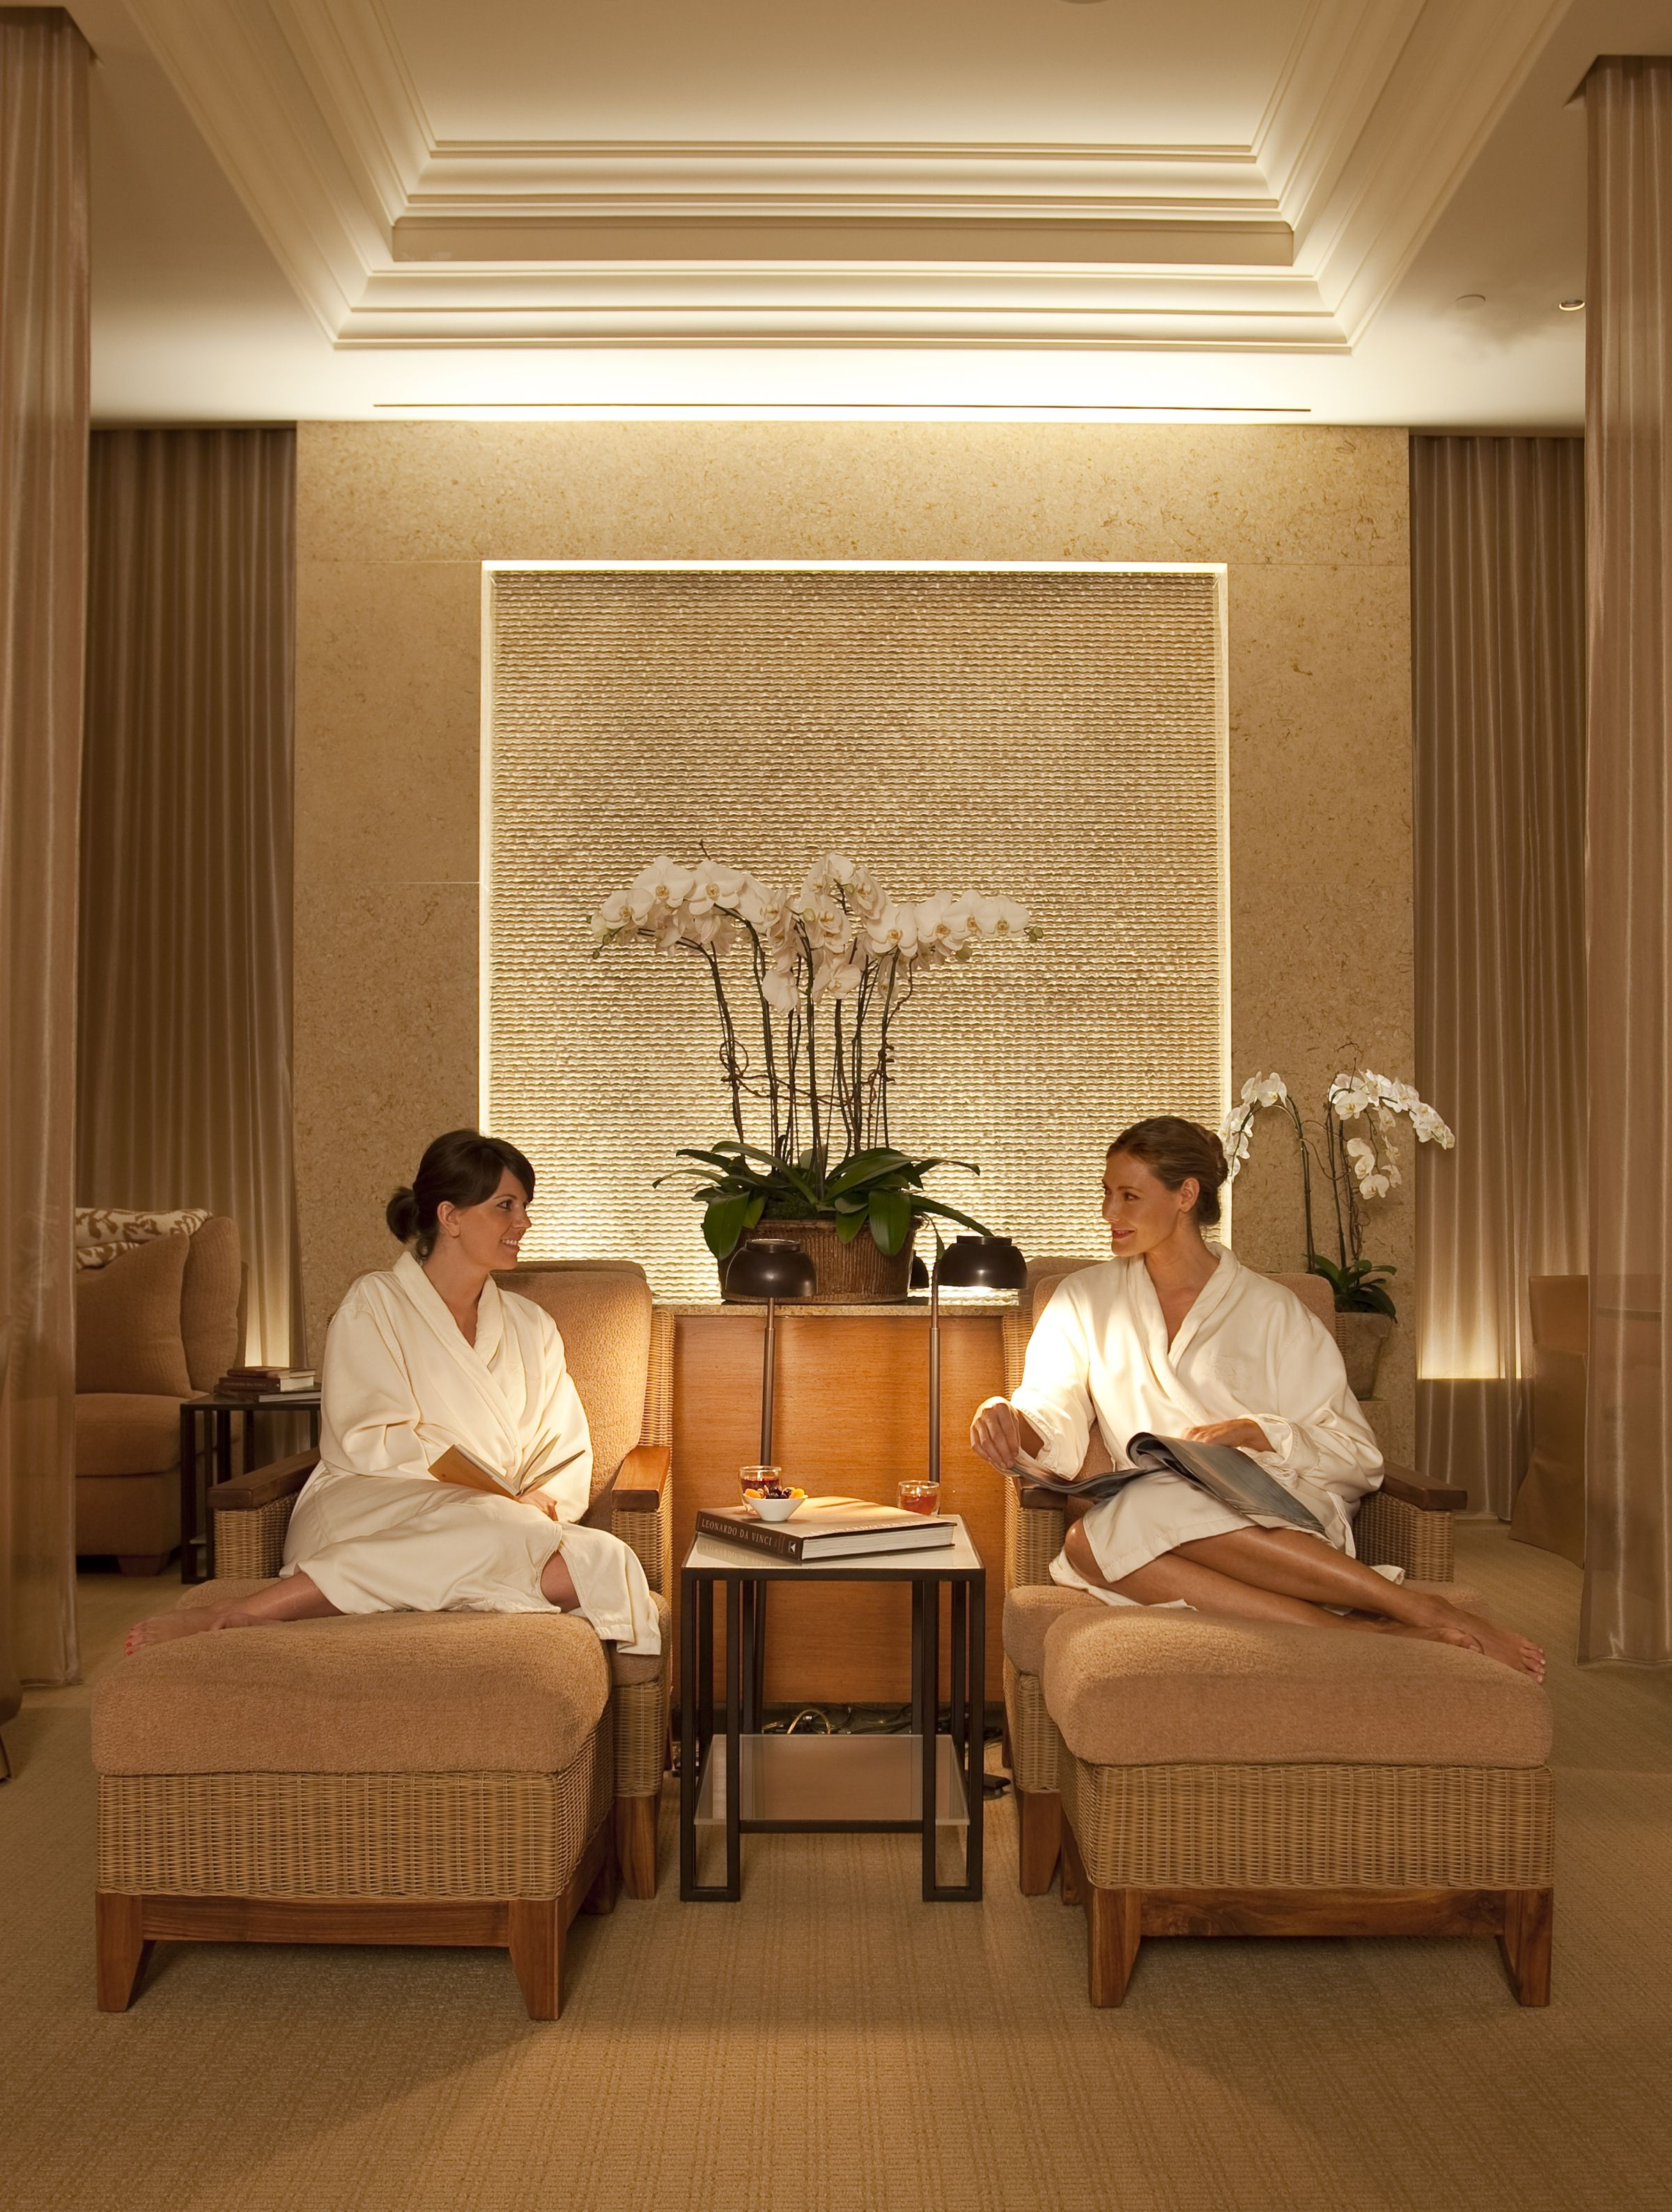 Spa Relaxation Room Jpg 2400 3176 Spa Relaxation Room Spa Lounge Relaxation Room